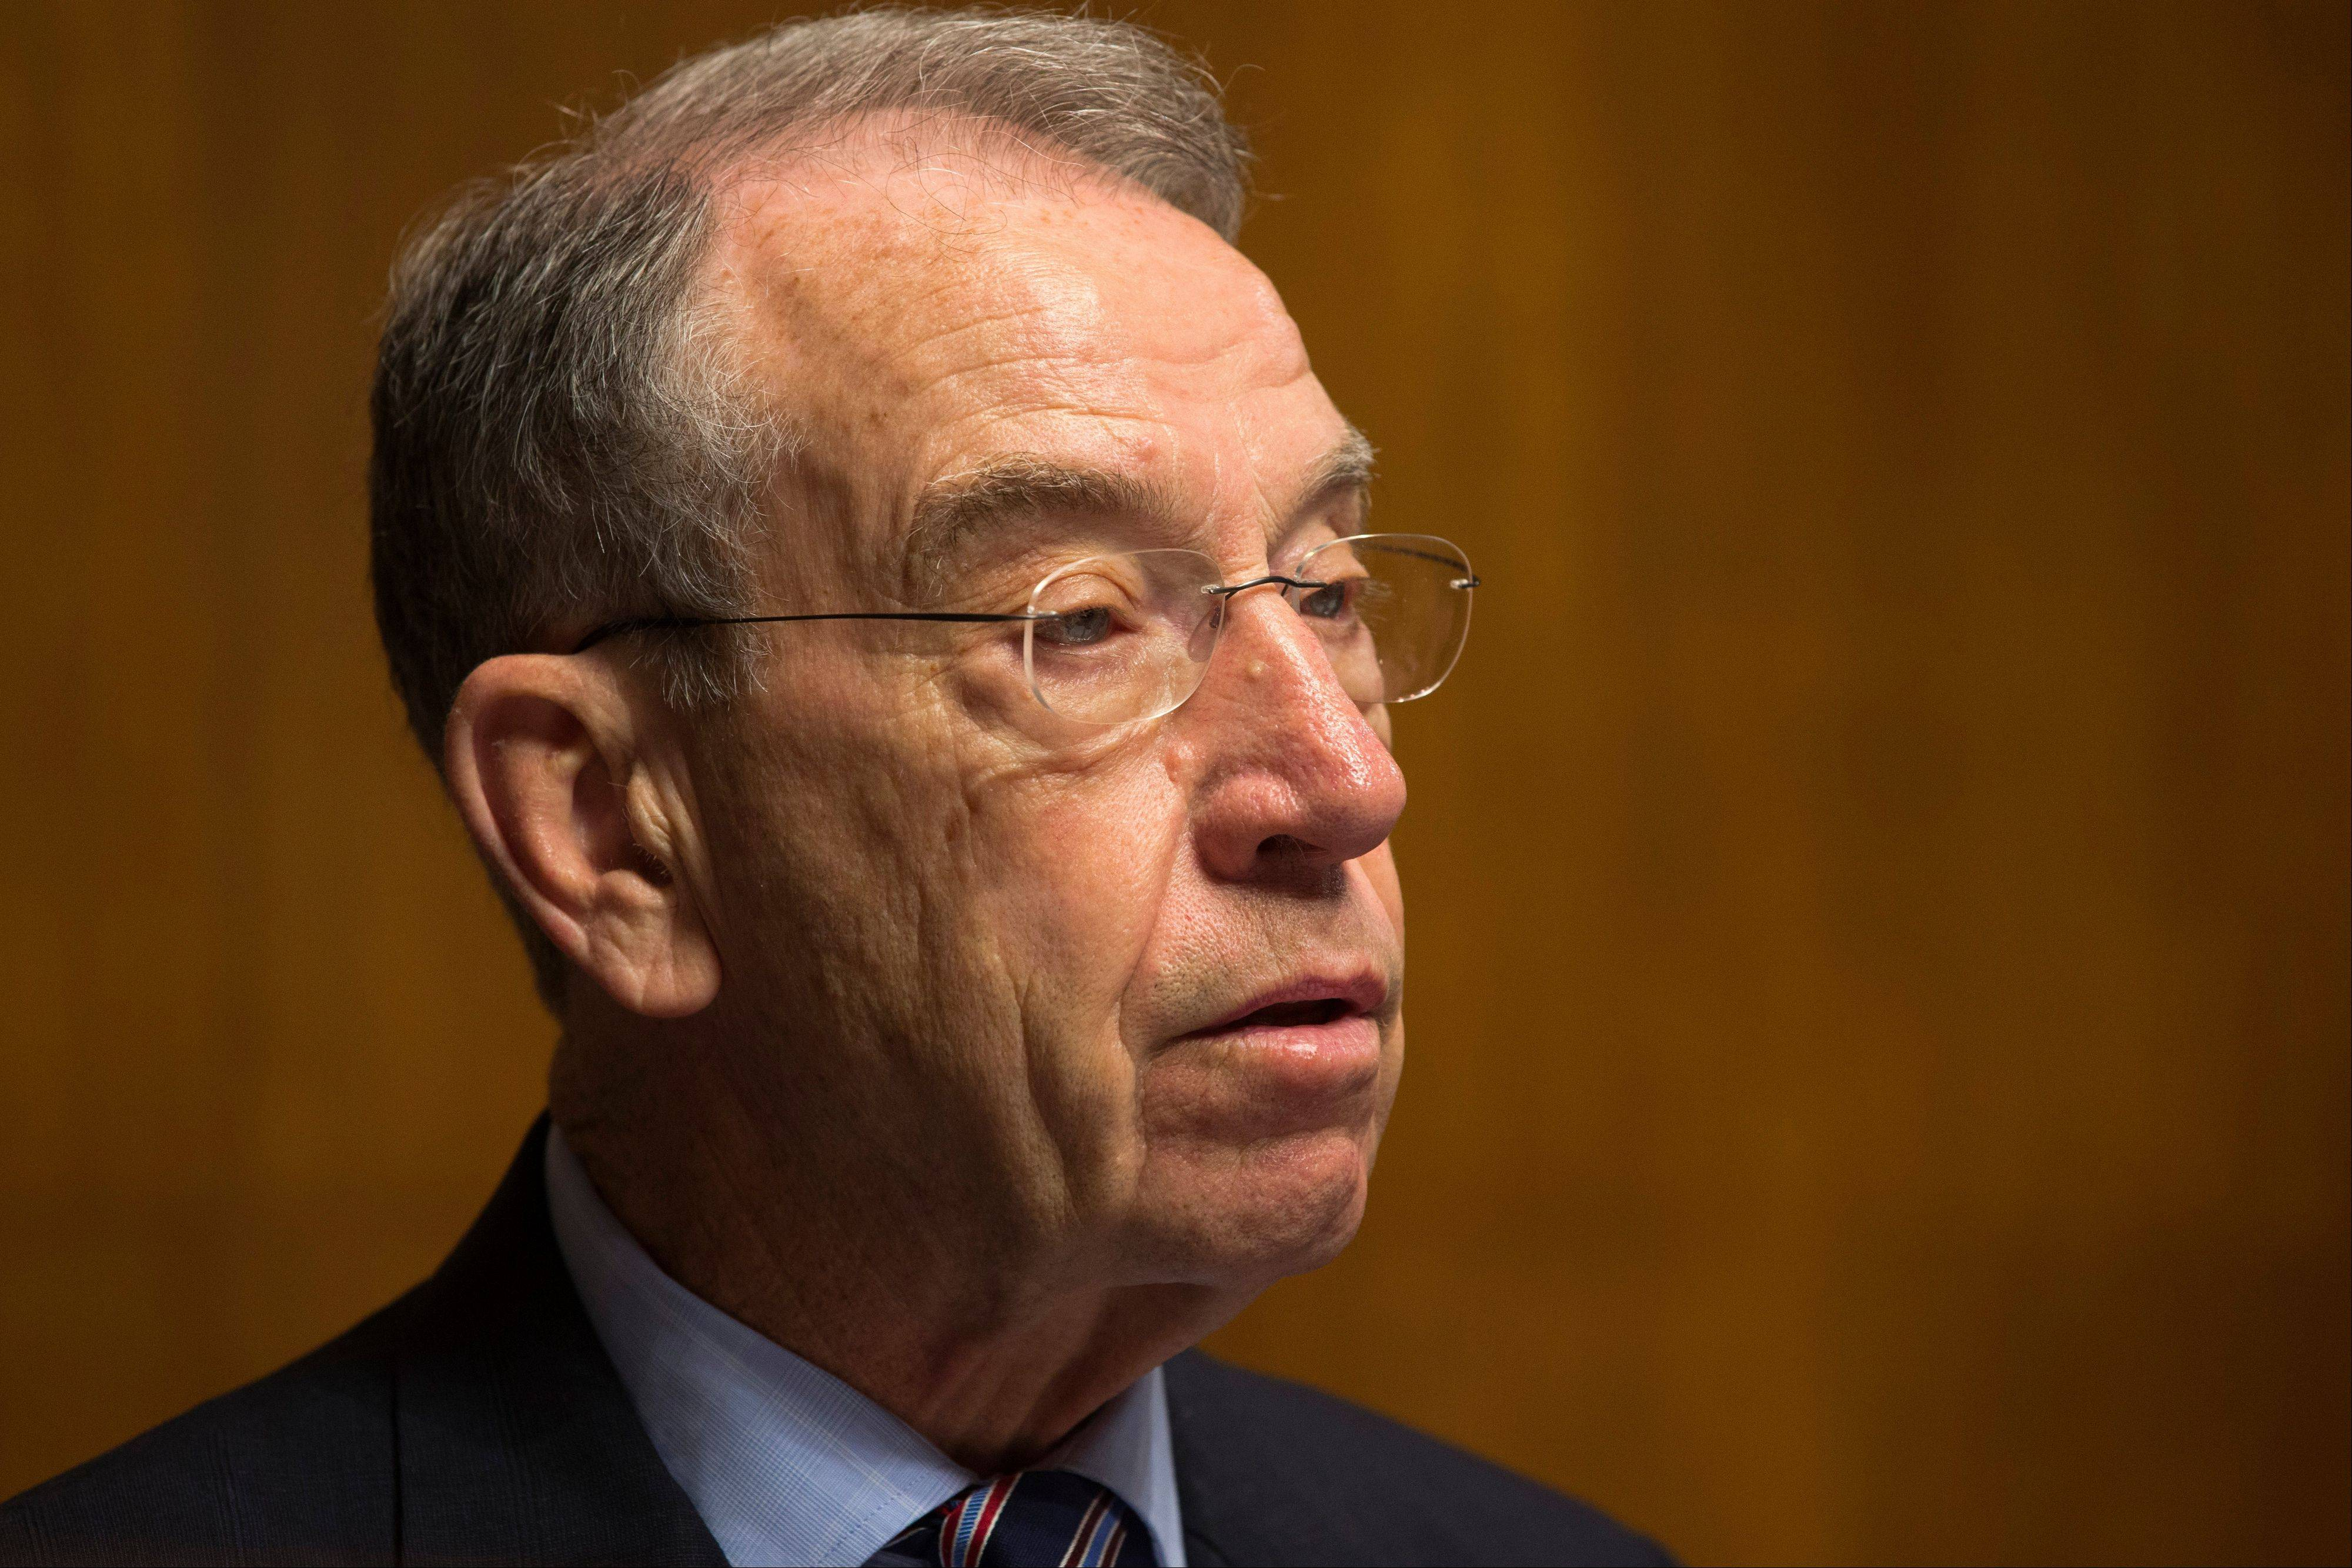 Sen. Chuck Grassley, R-Iowa, says the Internal Revenue Service is about to pay $70 million in employee bonuses despite an Obama administration directive to cancel discretionary bonuses because of automatic spending cuts.